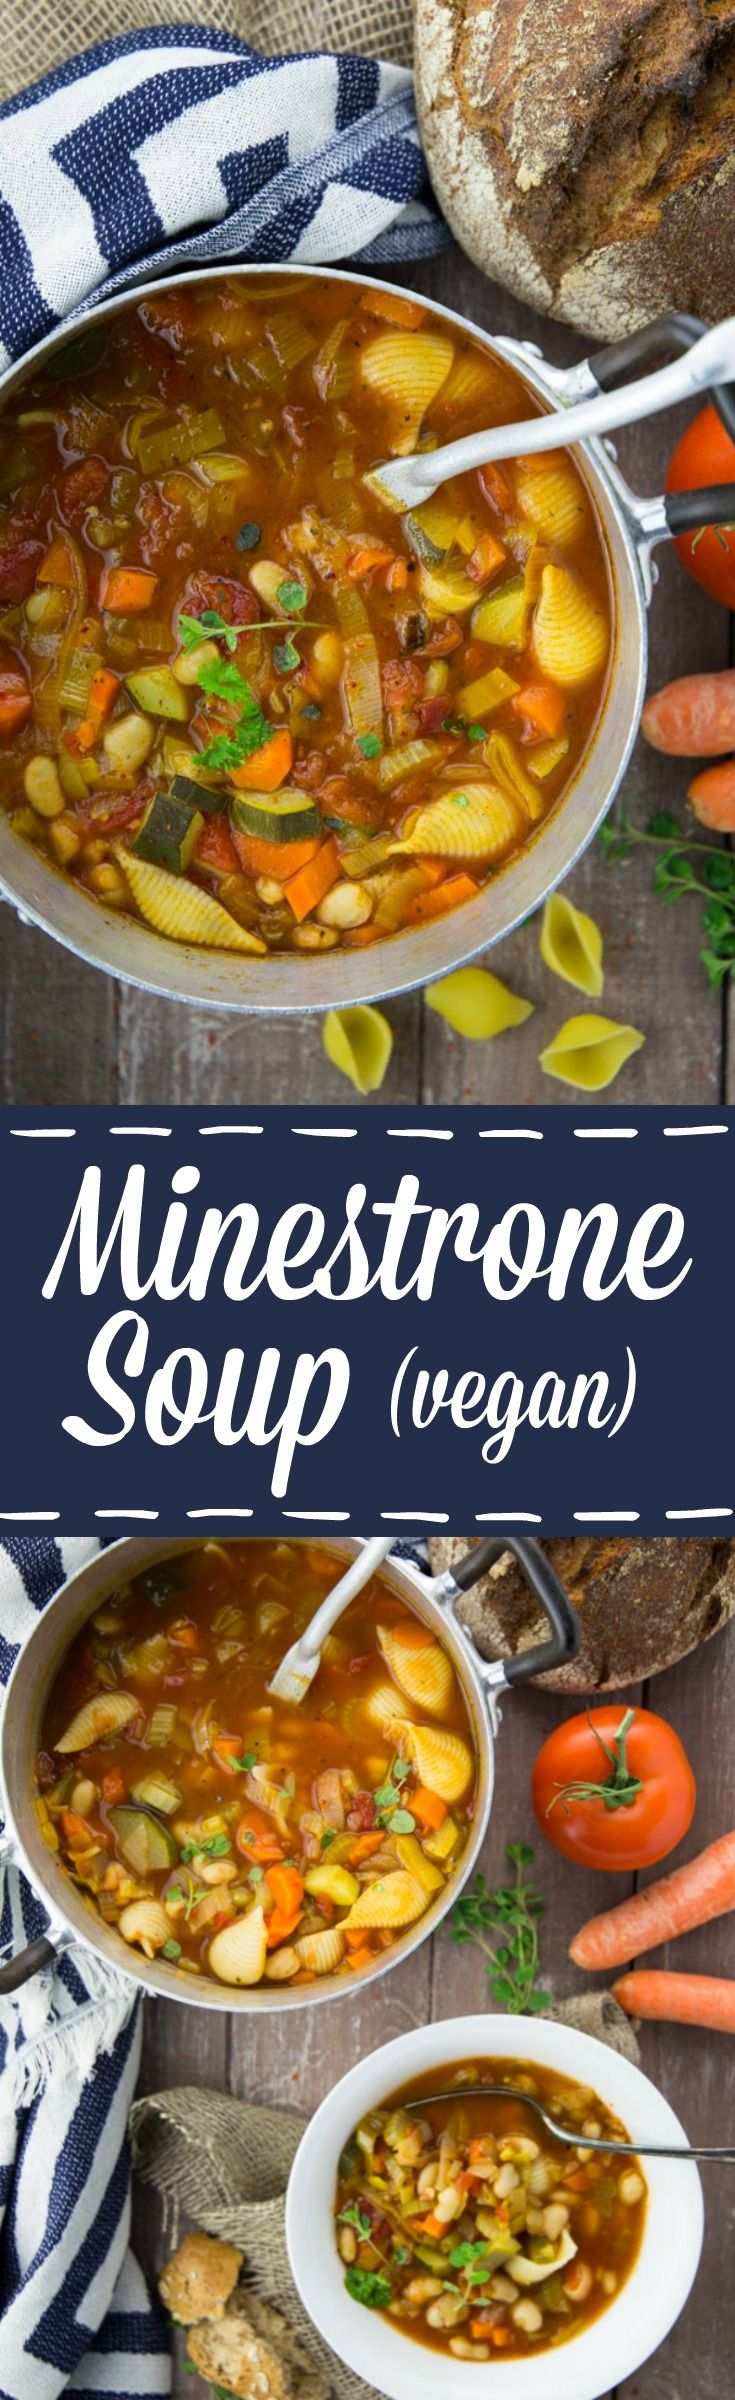 This vegan minestrone soup with white beans is perfect for cold winter days! It's super easy to make, incredibly healthy, and comforting!